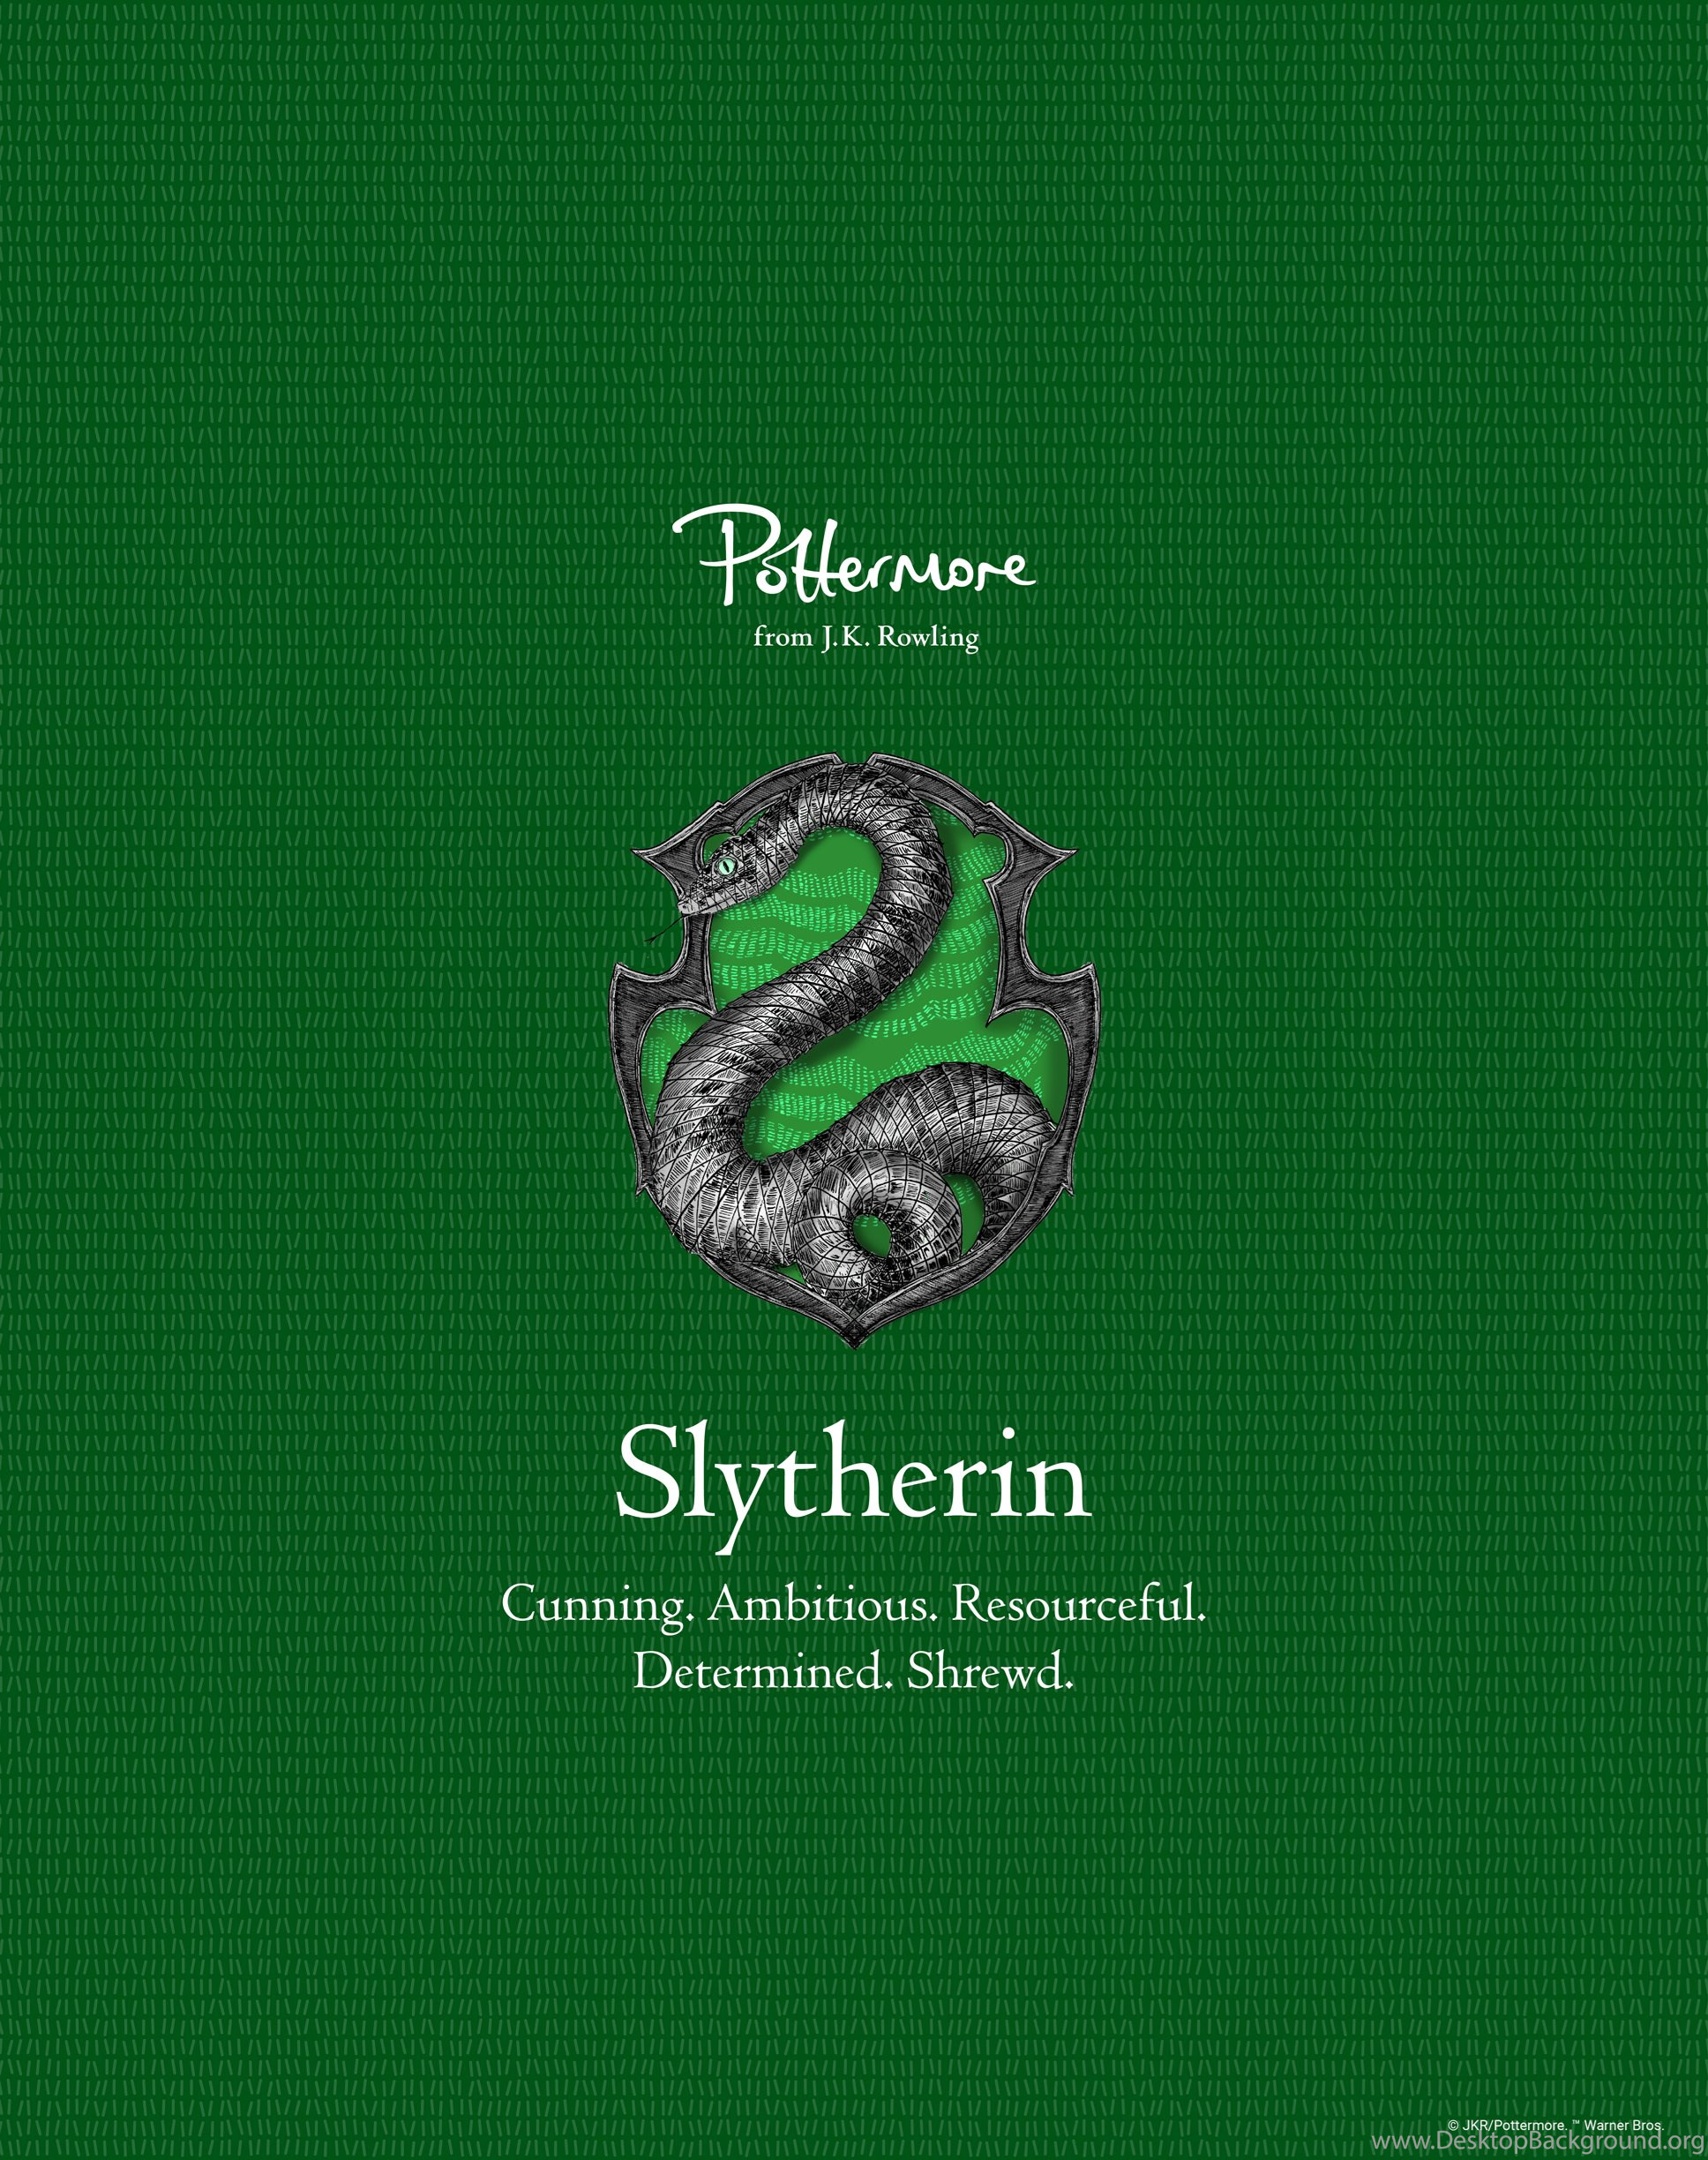 How To Make Live Wallpaper Iphone X Slytherin Wallpaper Tumblr 183 ①